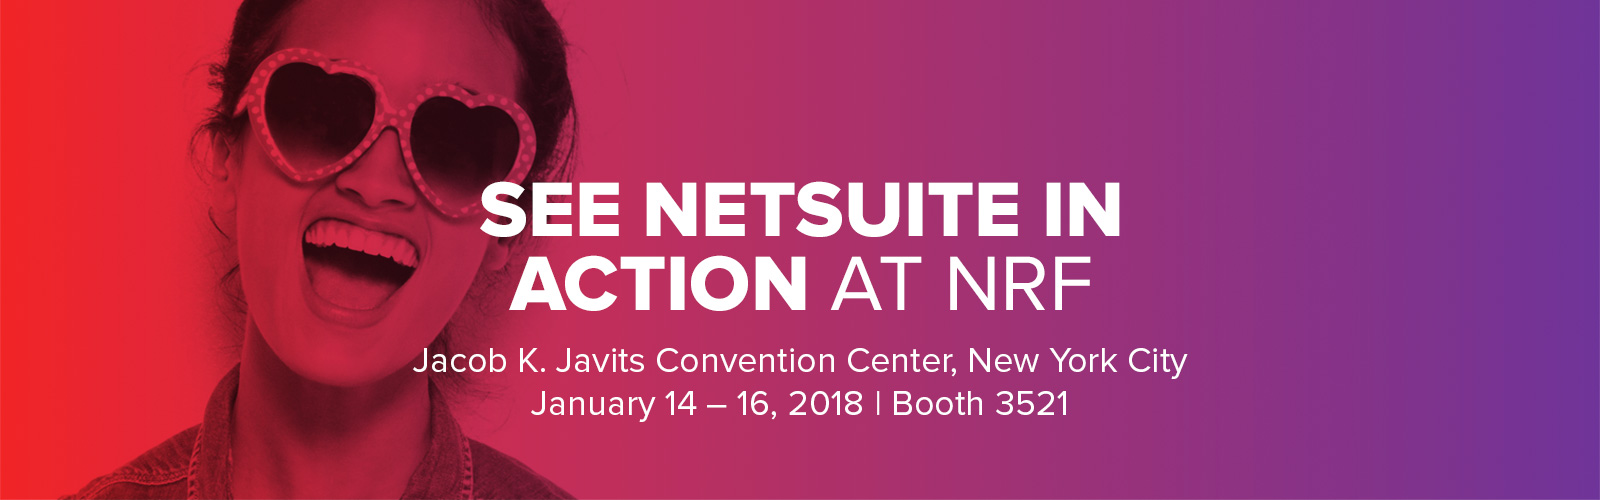 See NetSuite In Action at NRF